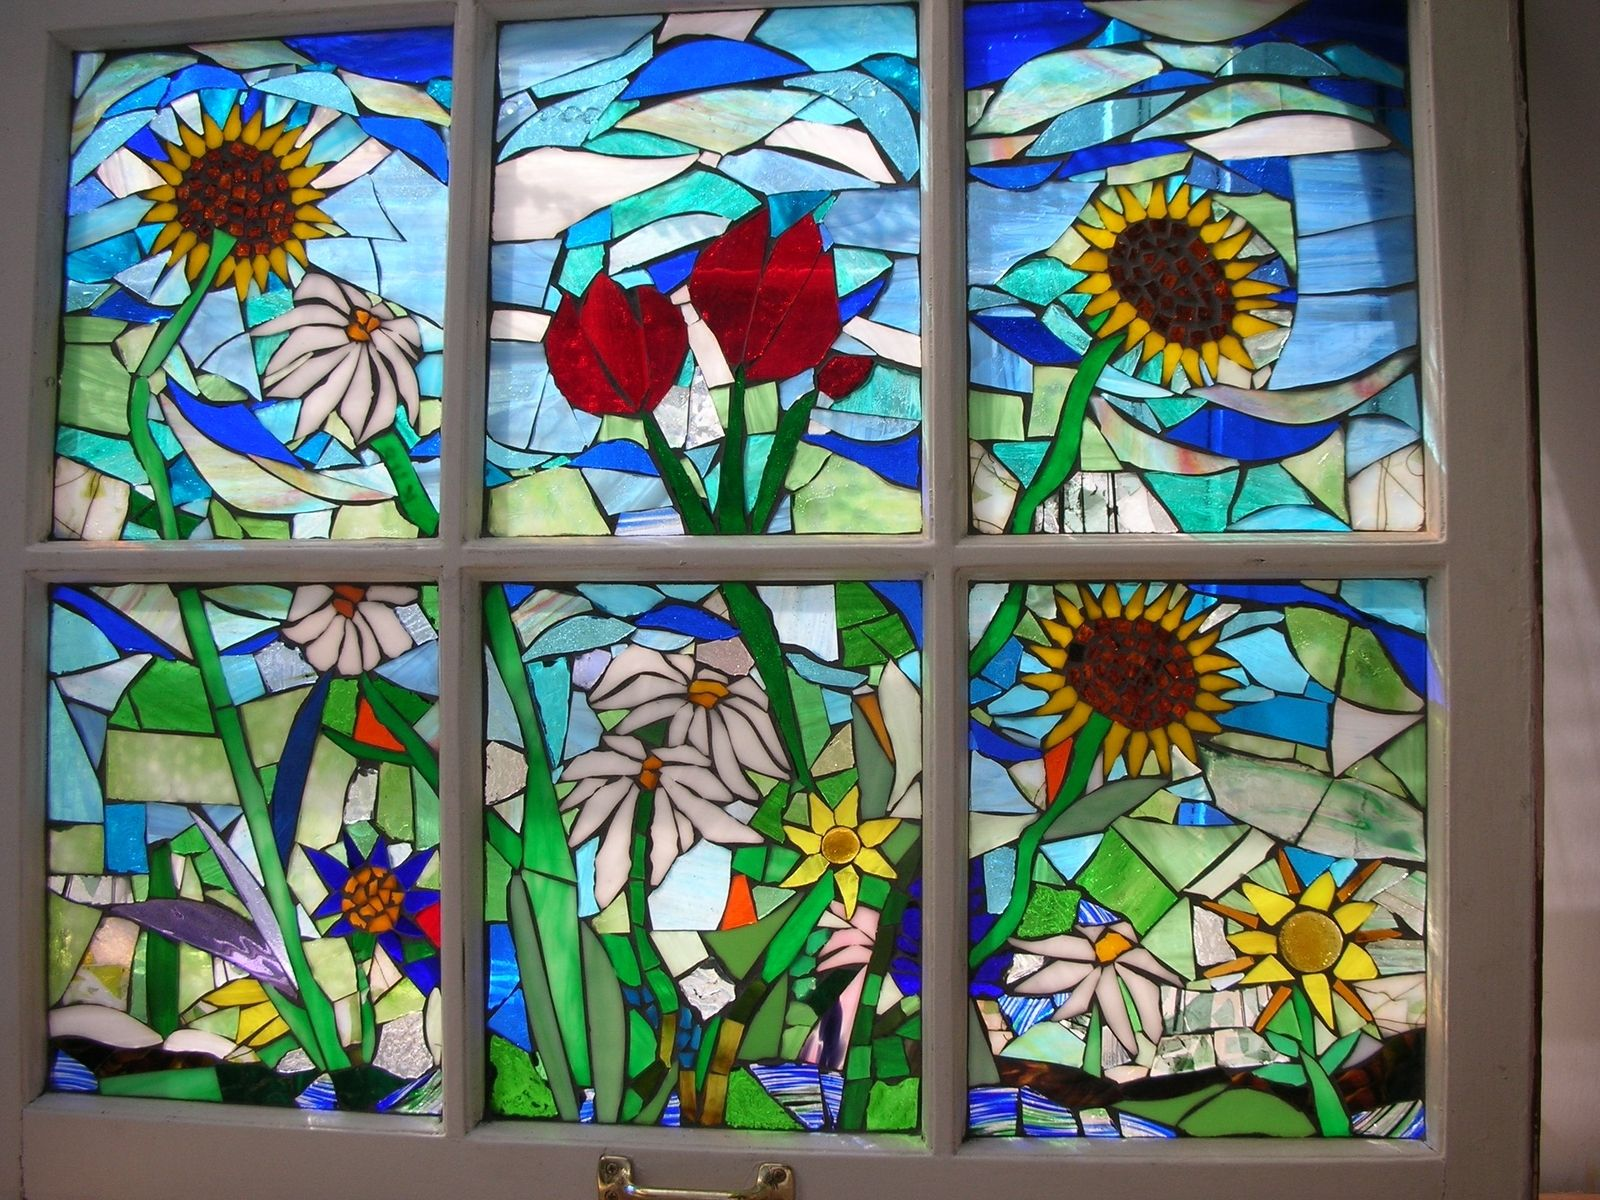 Stained glass window hangings also add leaded stained glass windows for sale also add painted glass window panels also add stained glass transom window panels